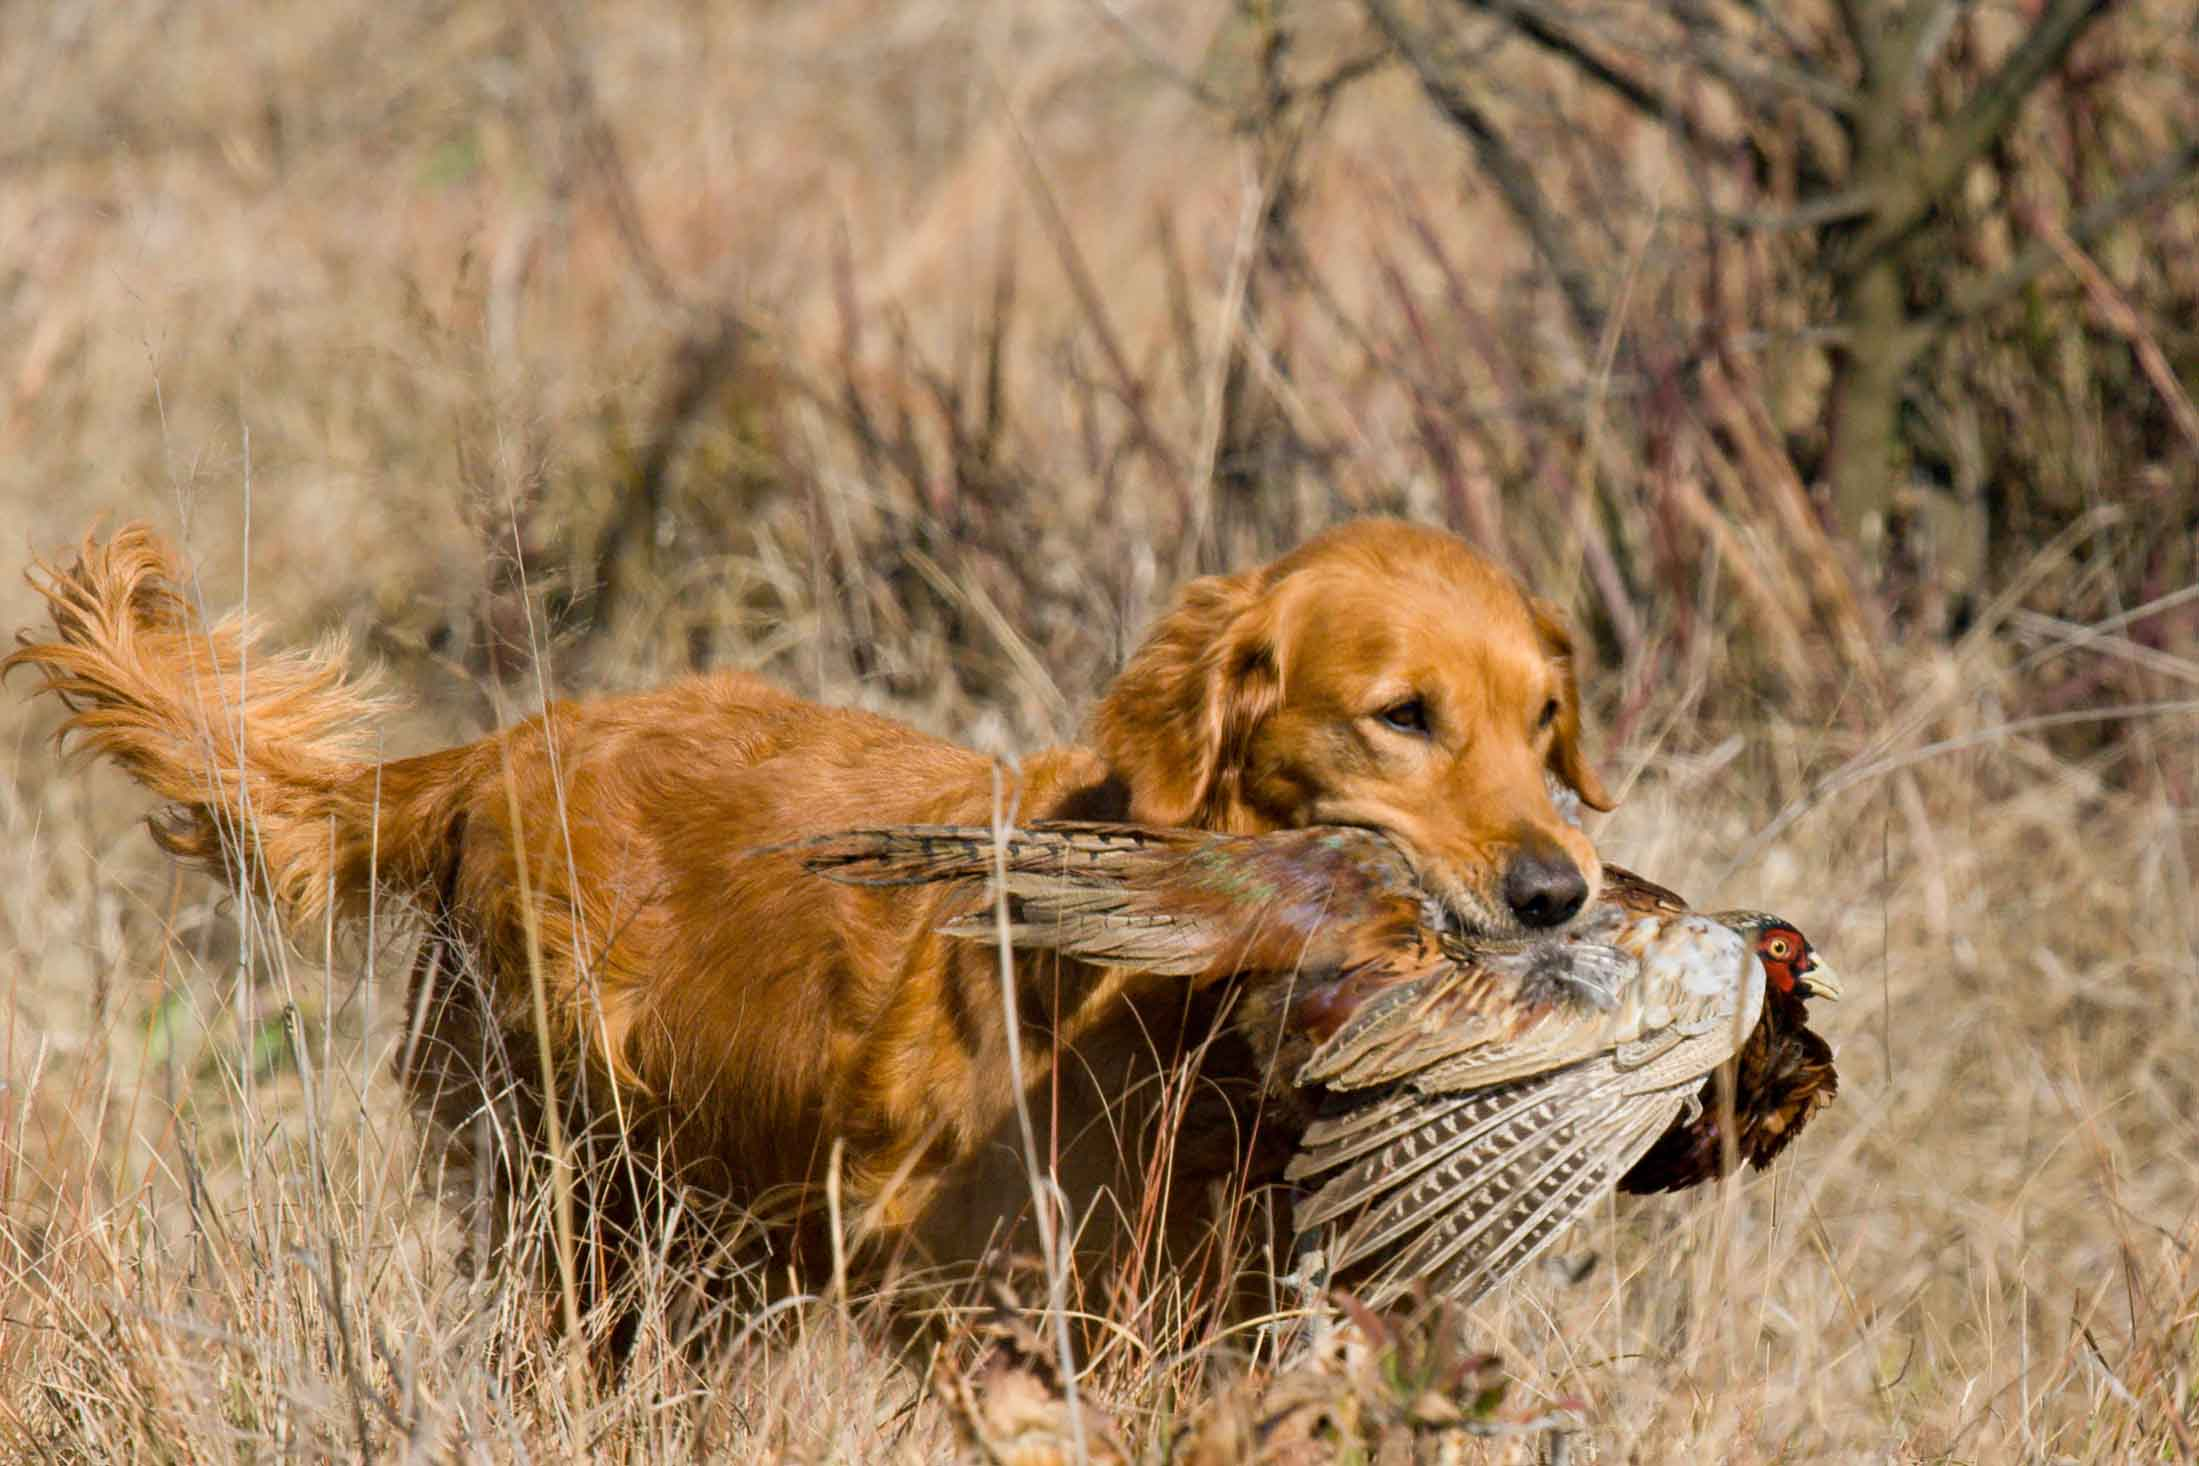 Hunting Golden Retriever